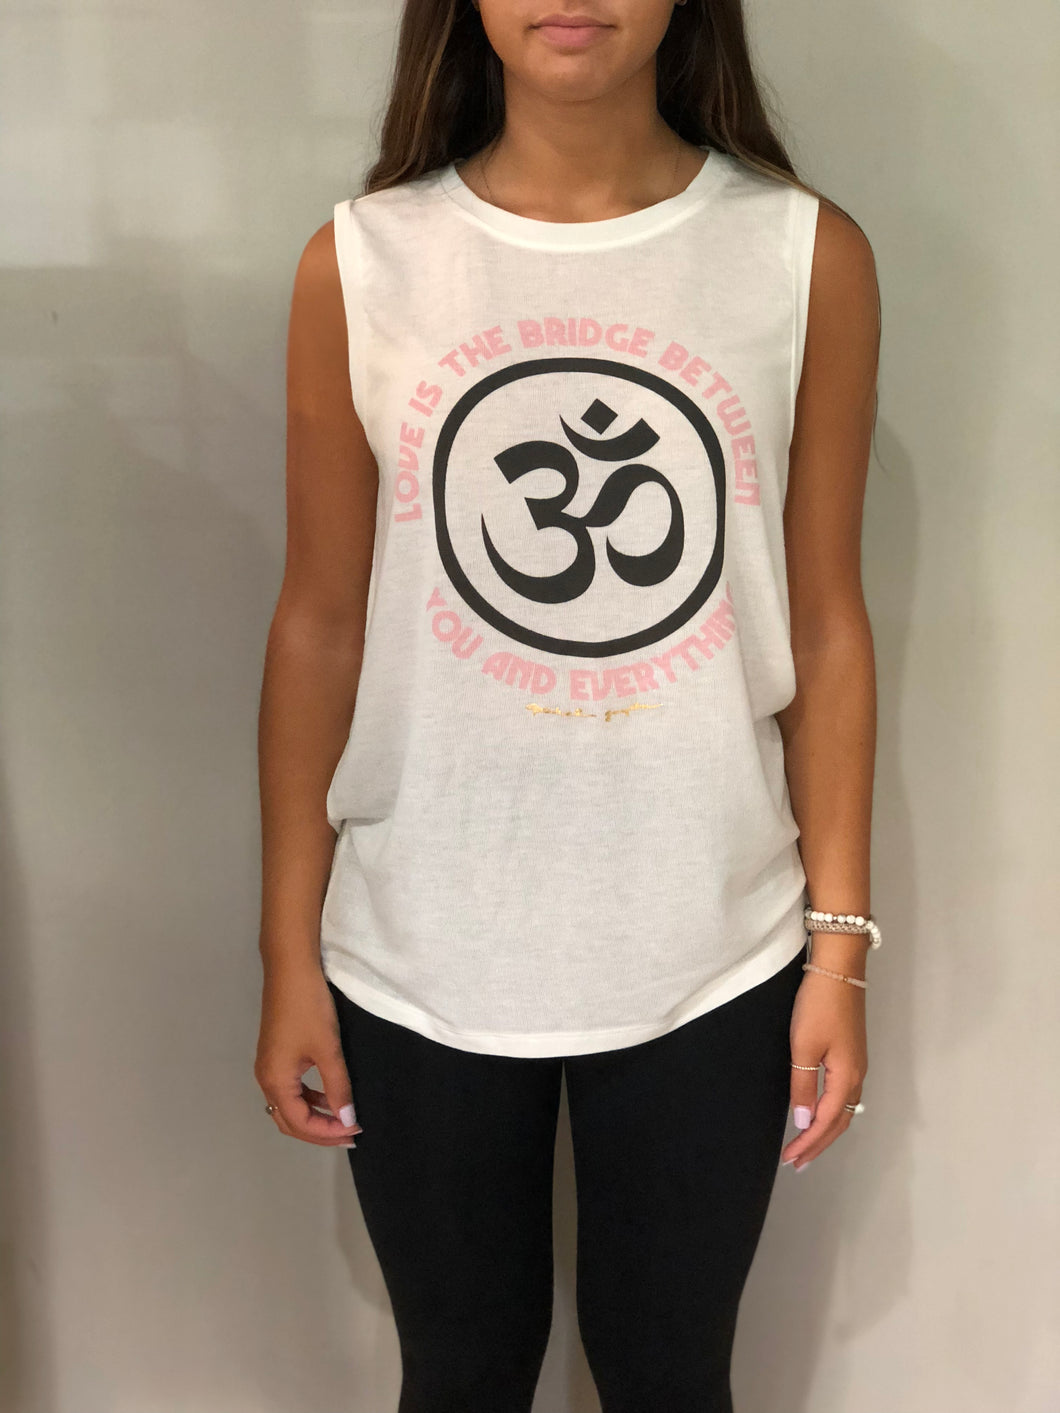 SG Love Is The Bridge Chakra Tank